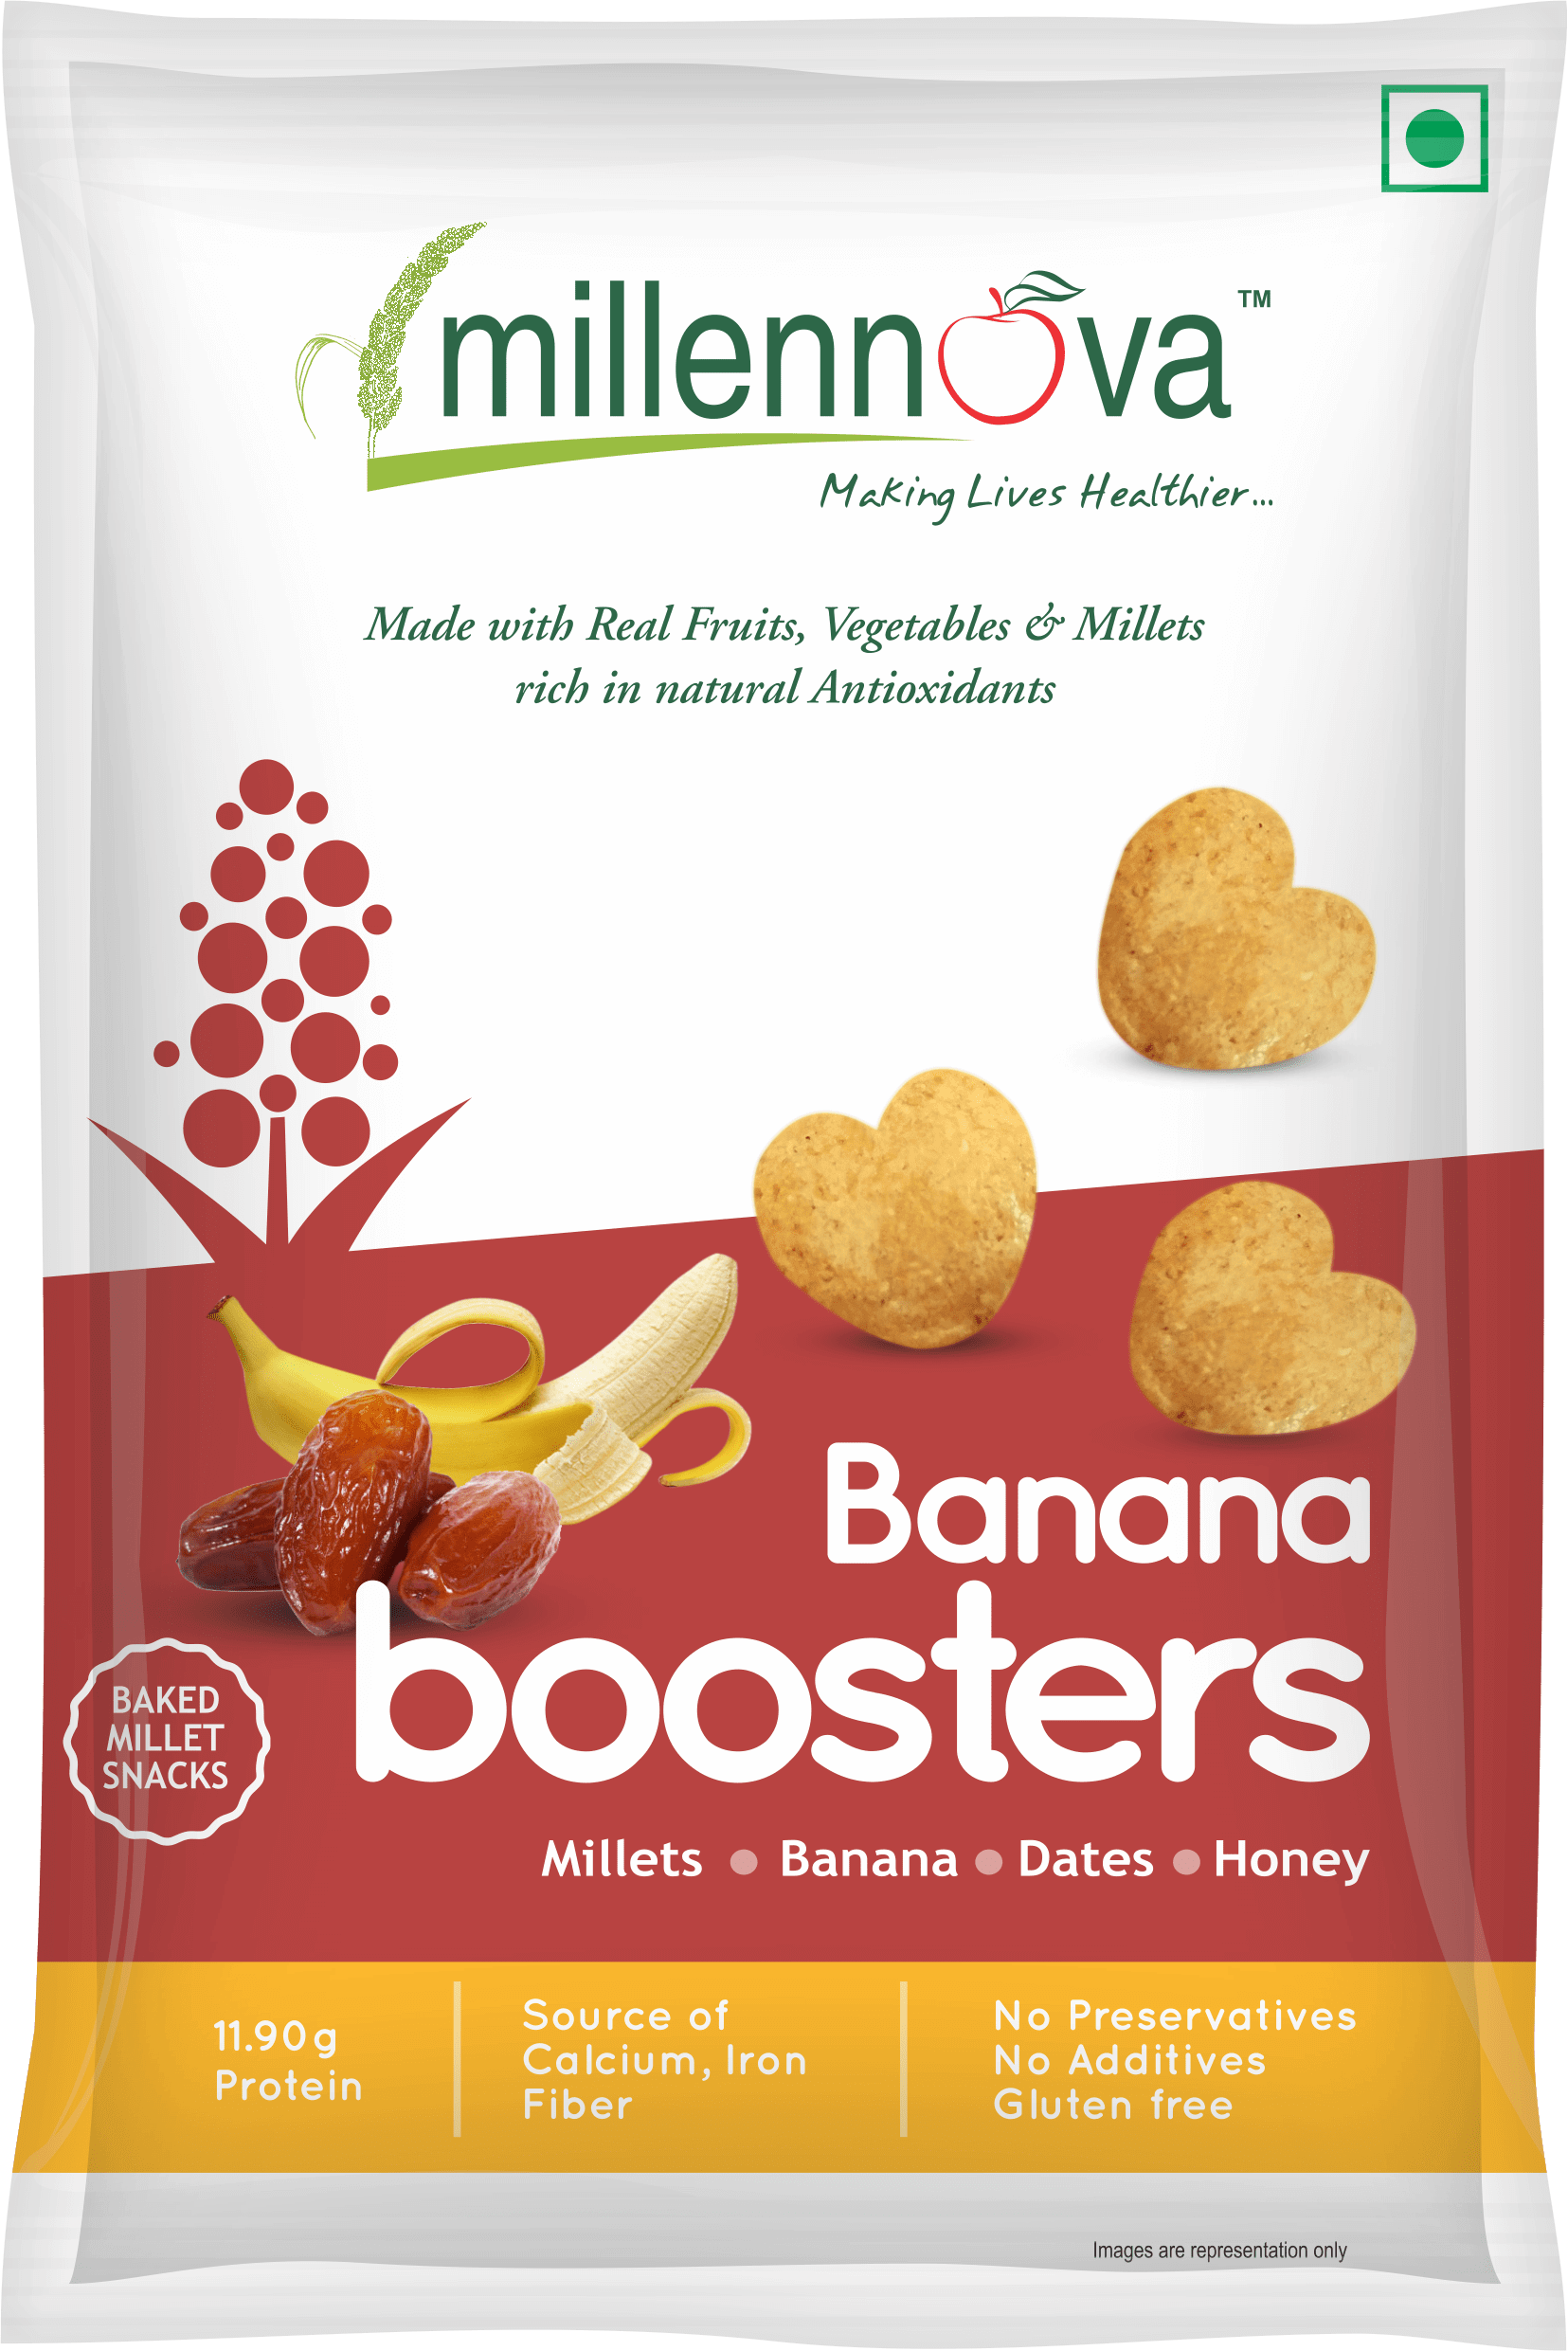 Banana Boosters – Made with Millets, Bananas, Dates, Honey